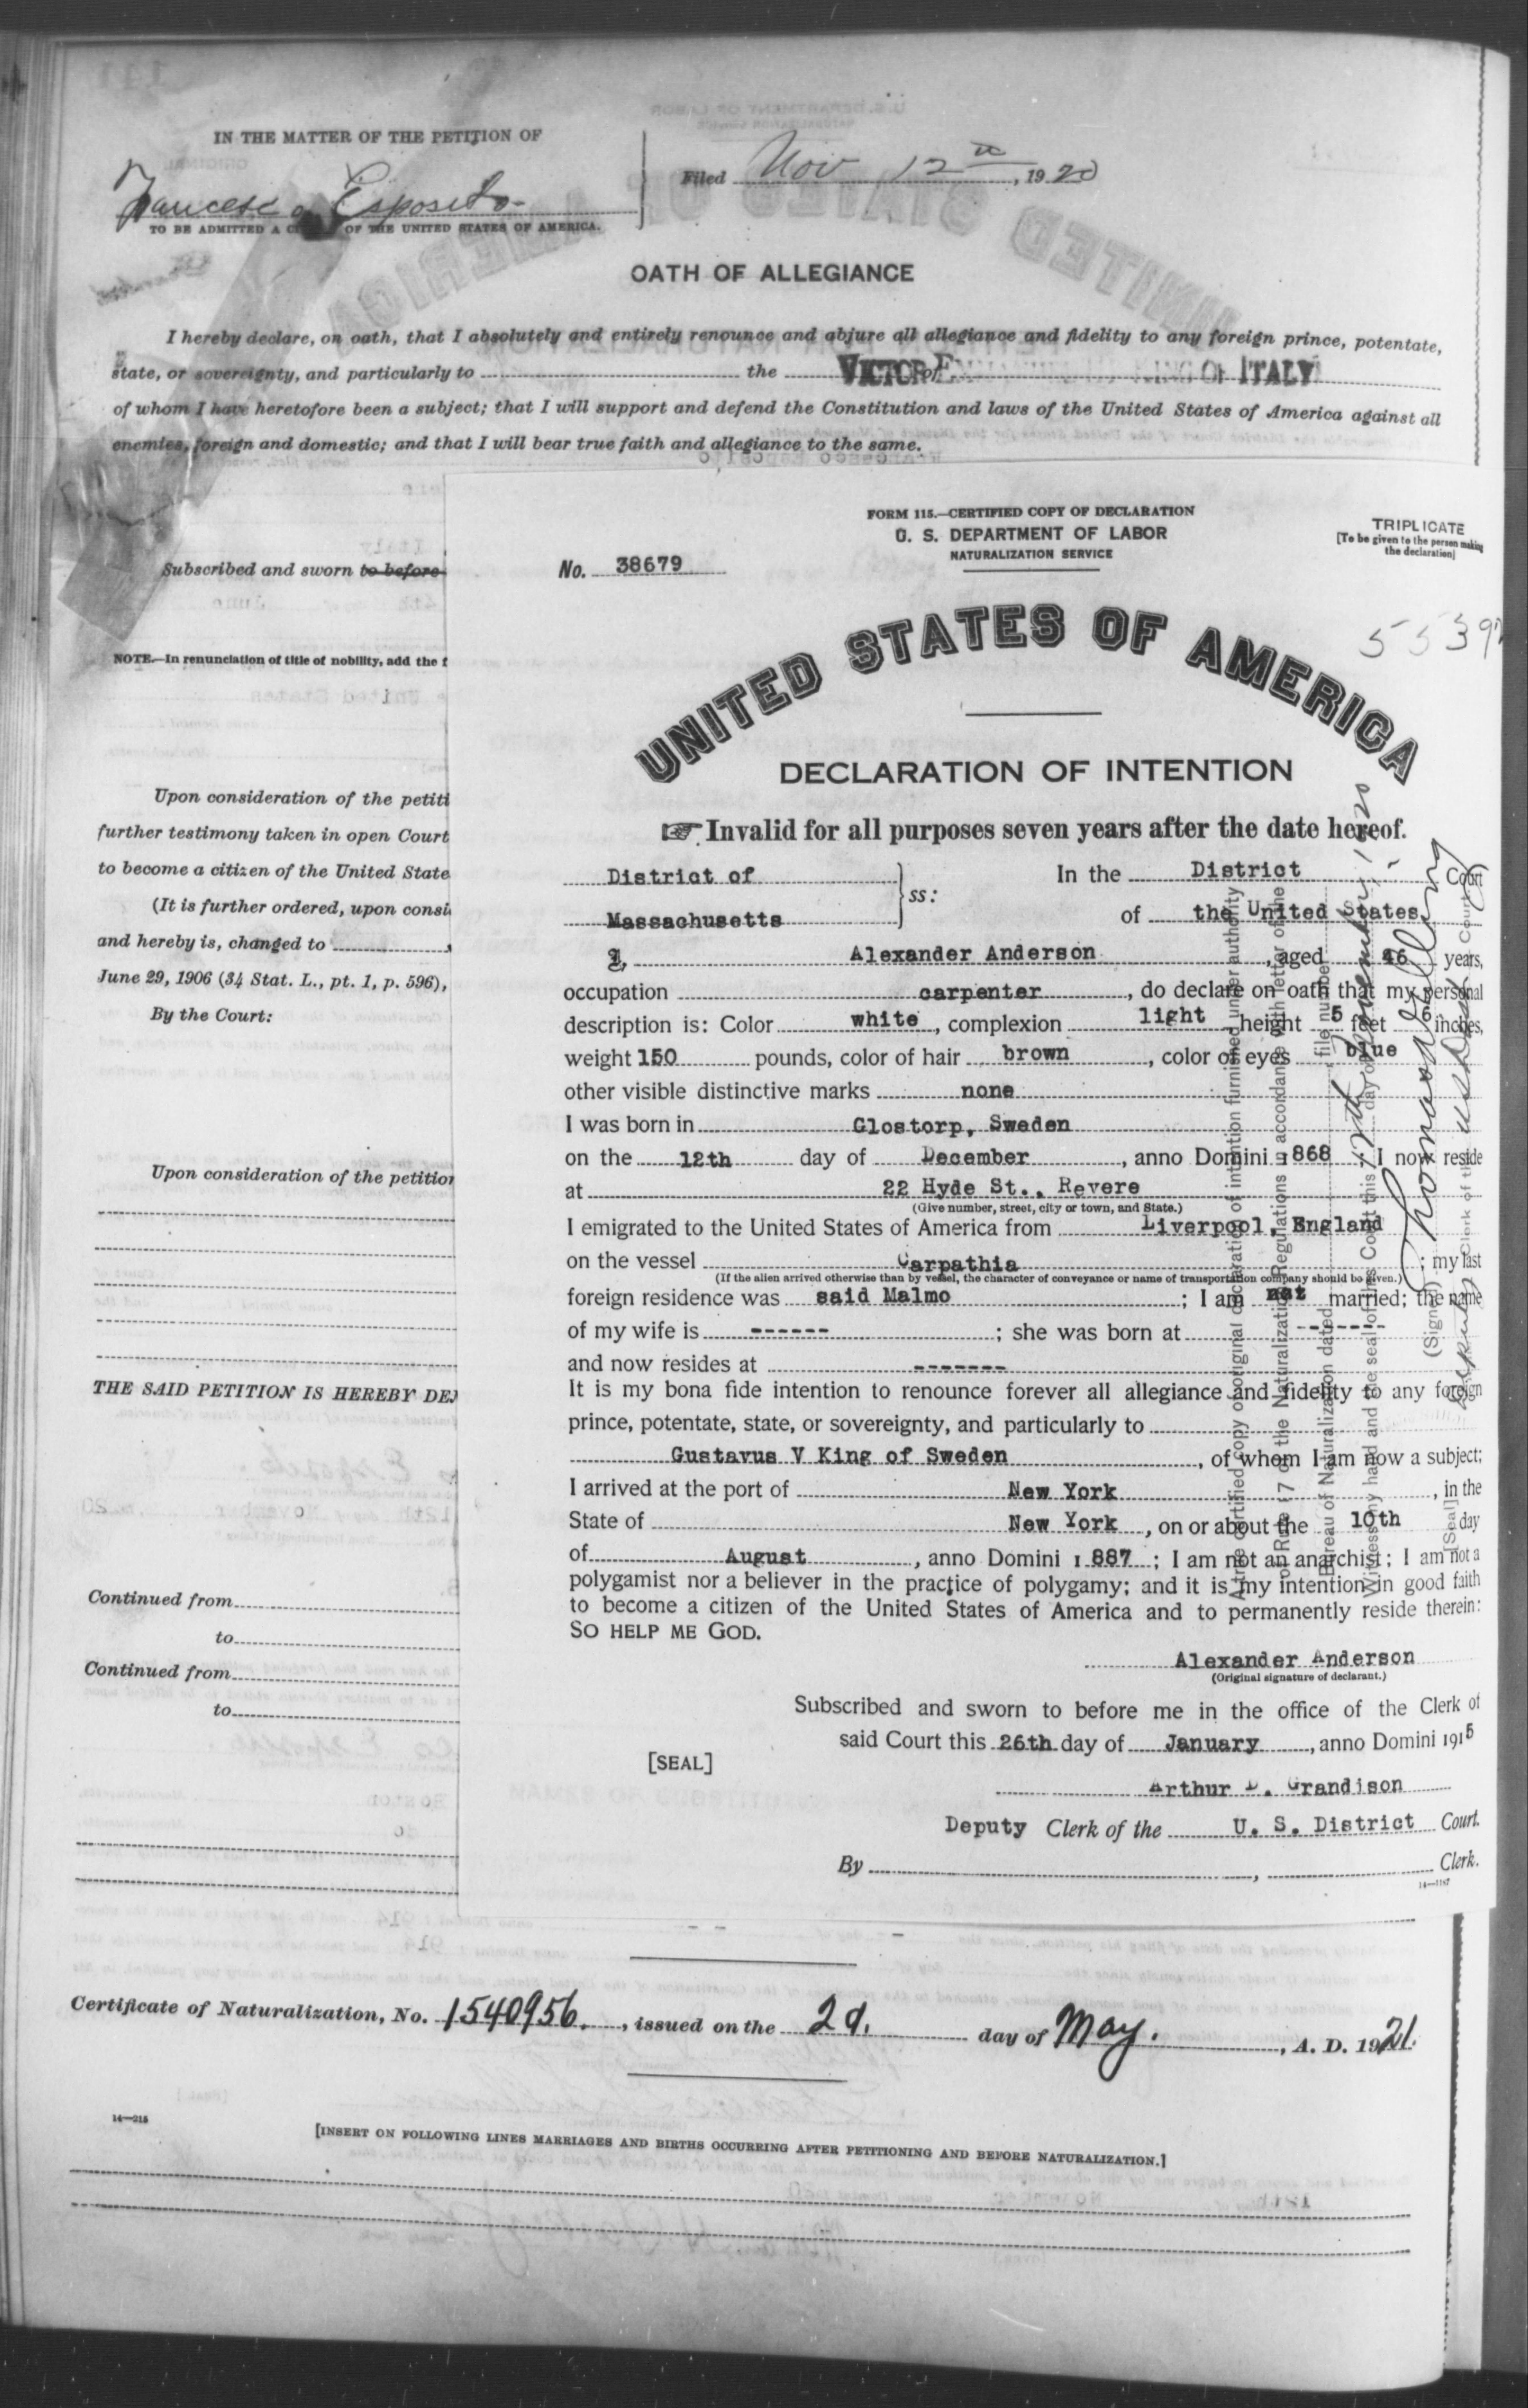 Petition for Naturalization of Alexander Anderson